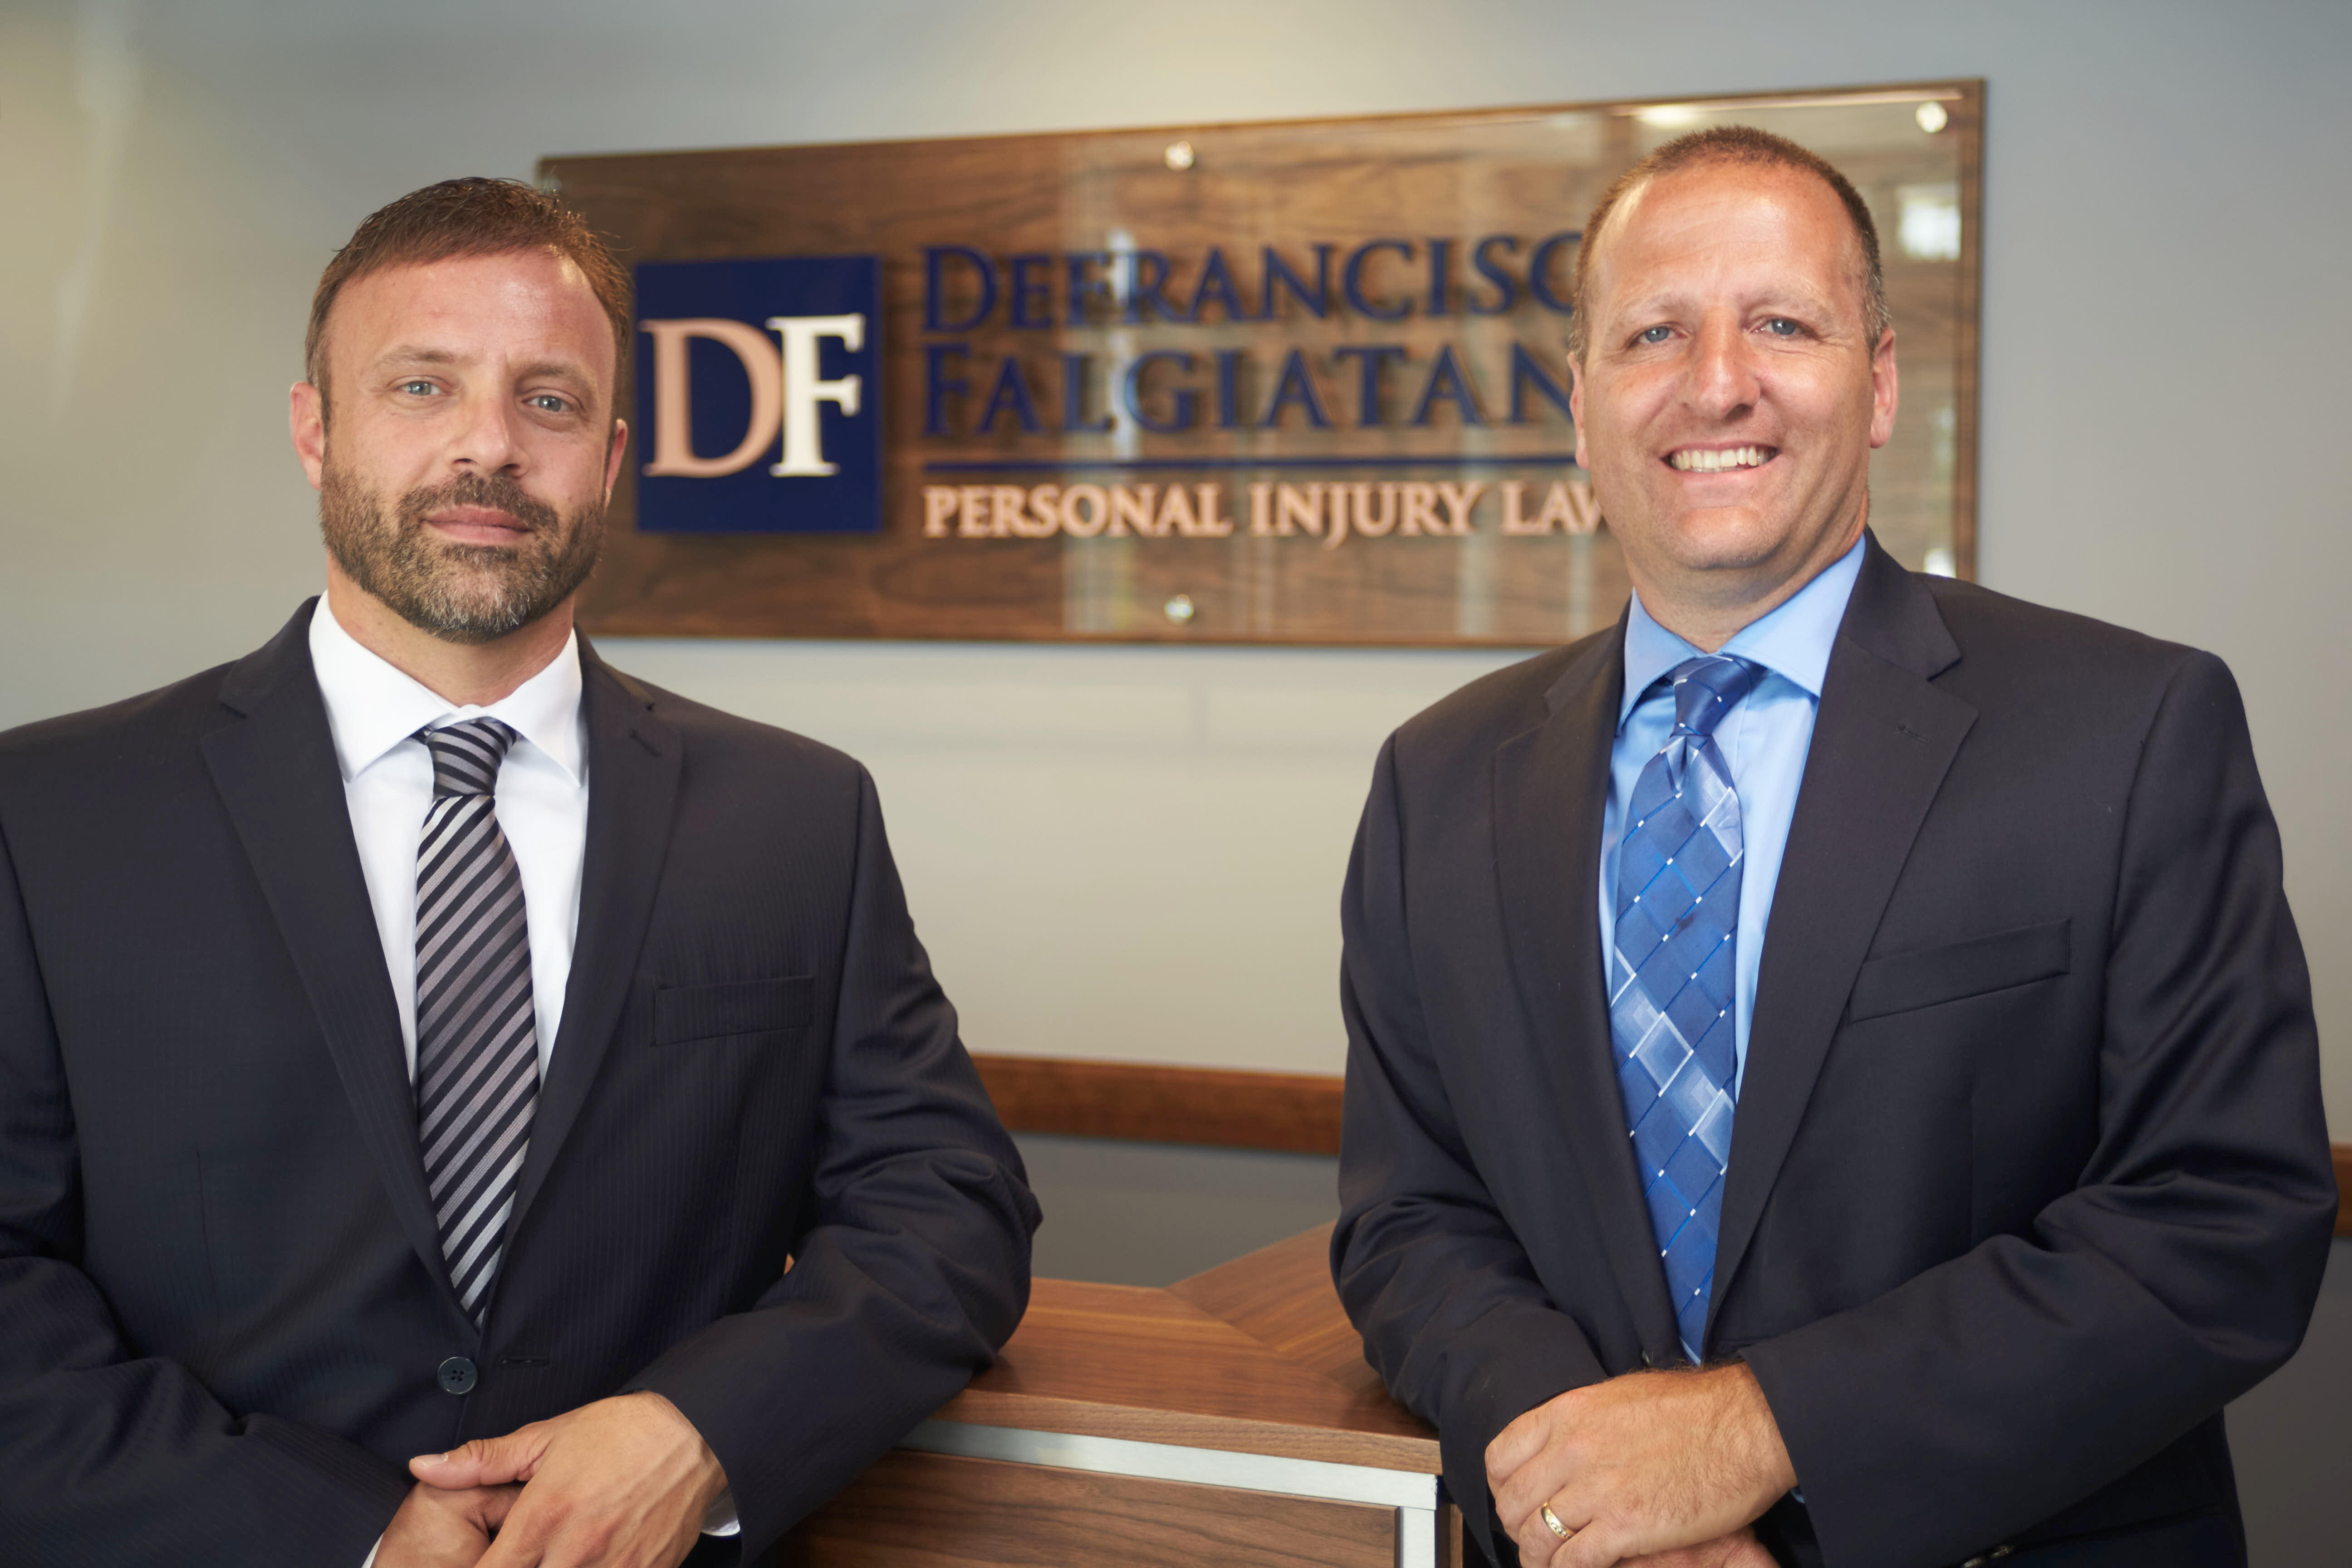 Defrancisco falgiatano personal injury lawyers in for Medical motors rochester ny